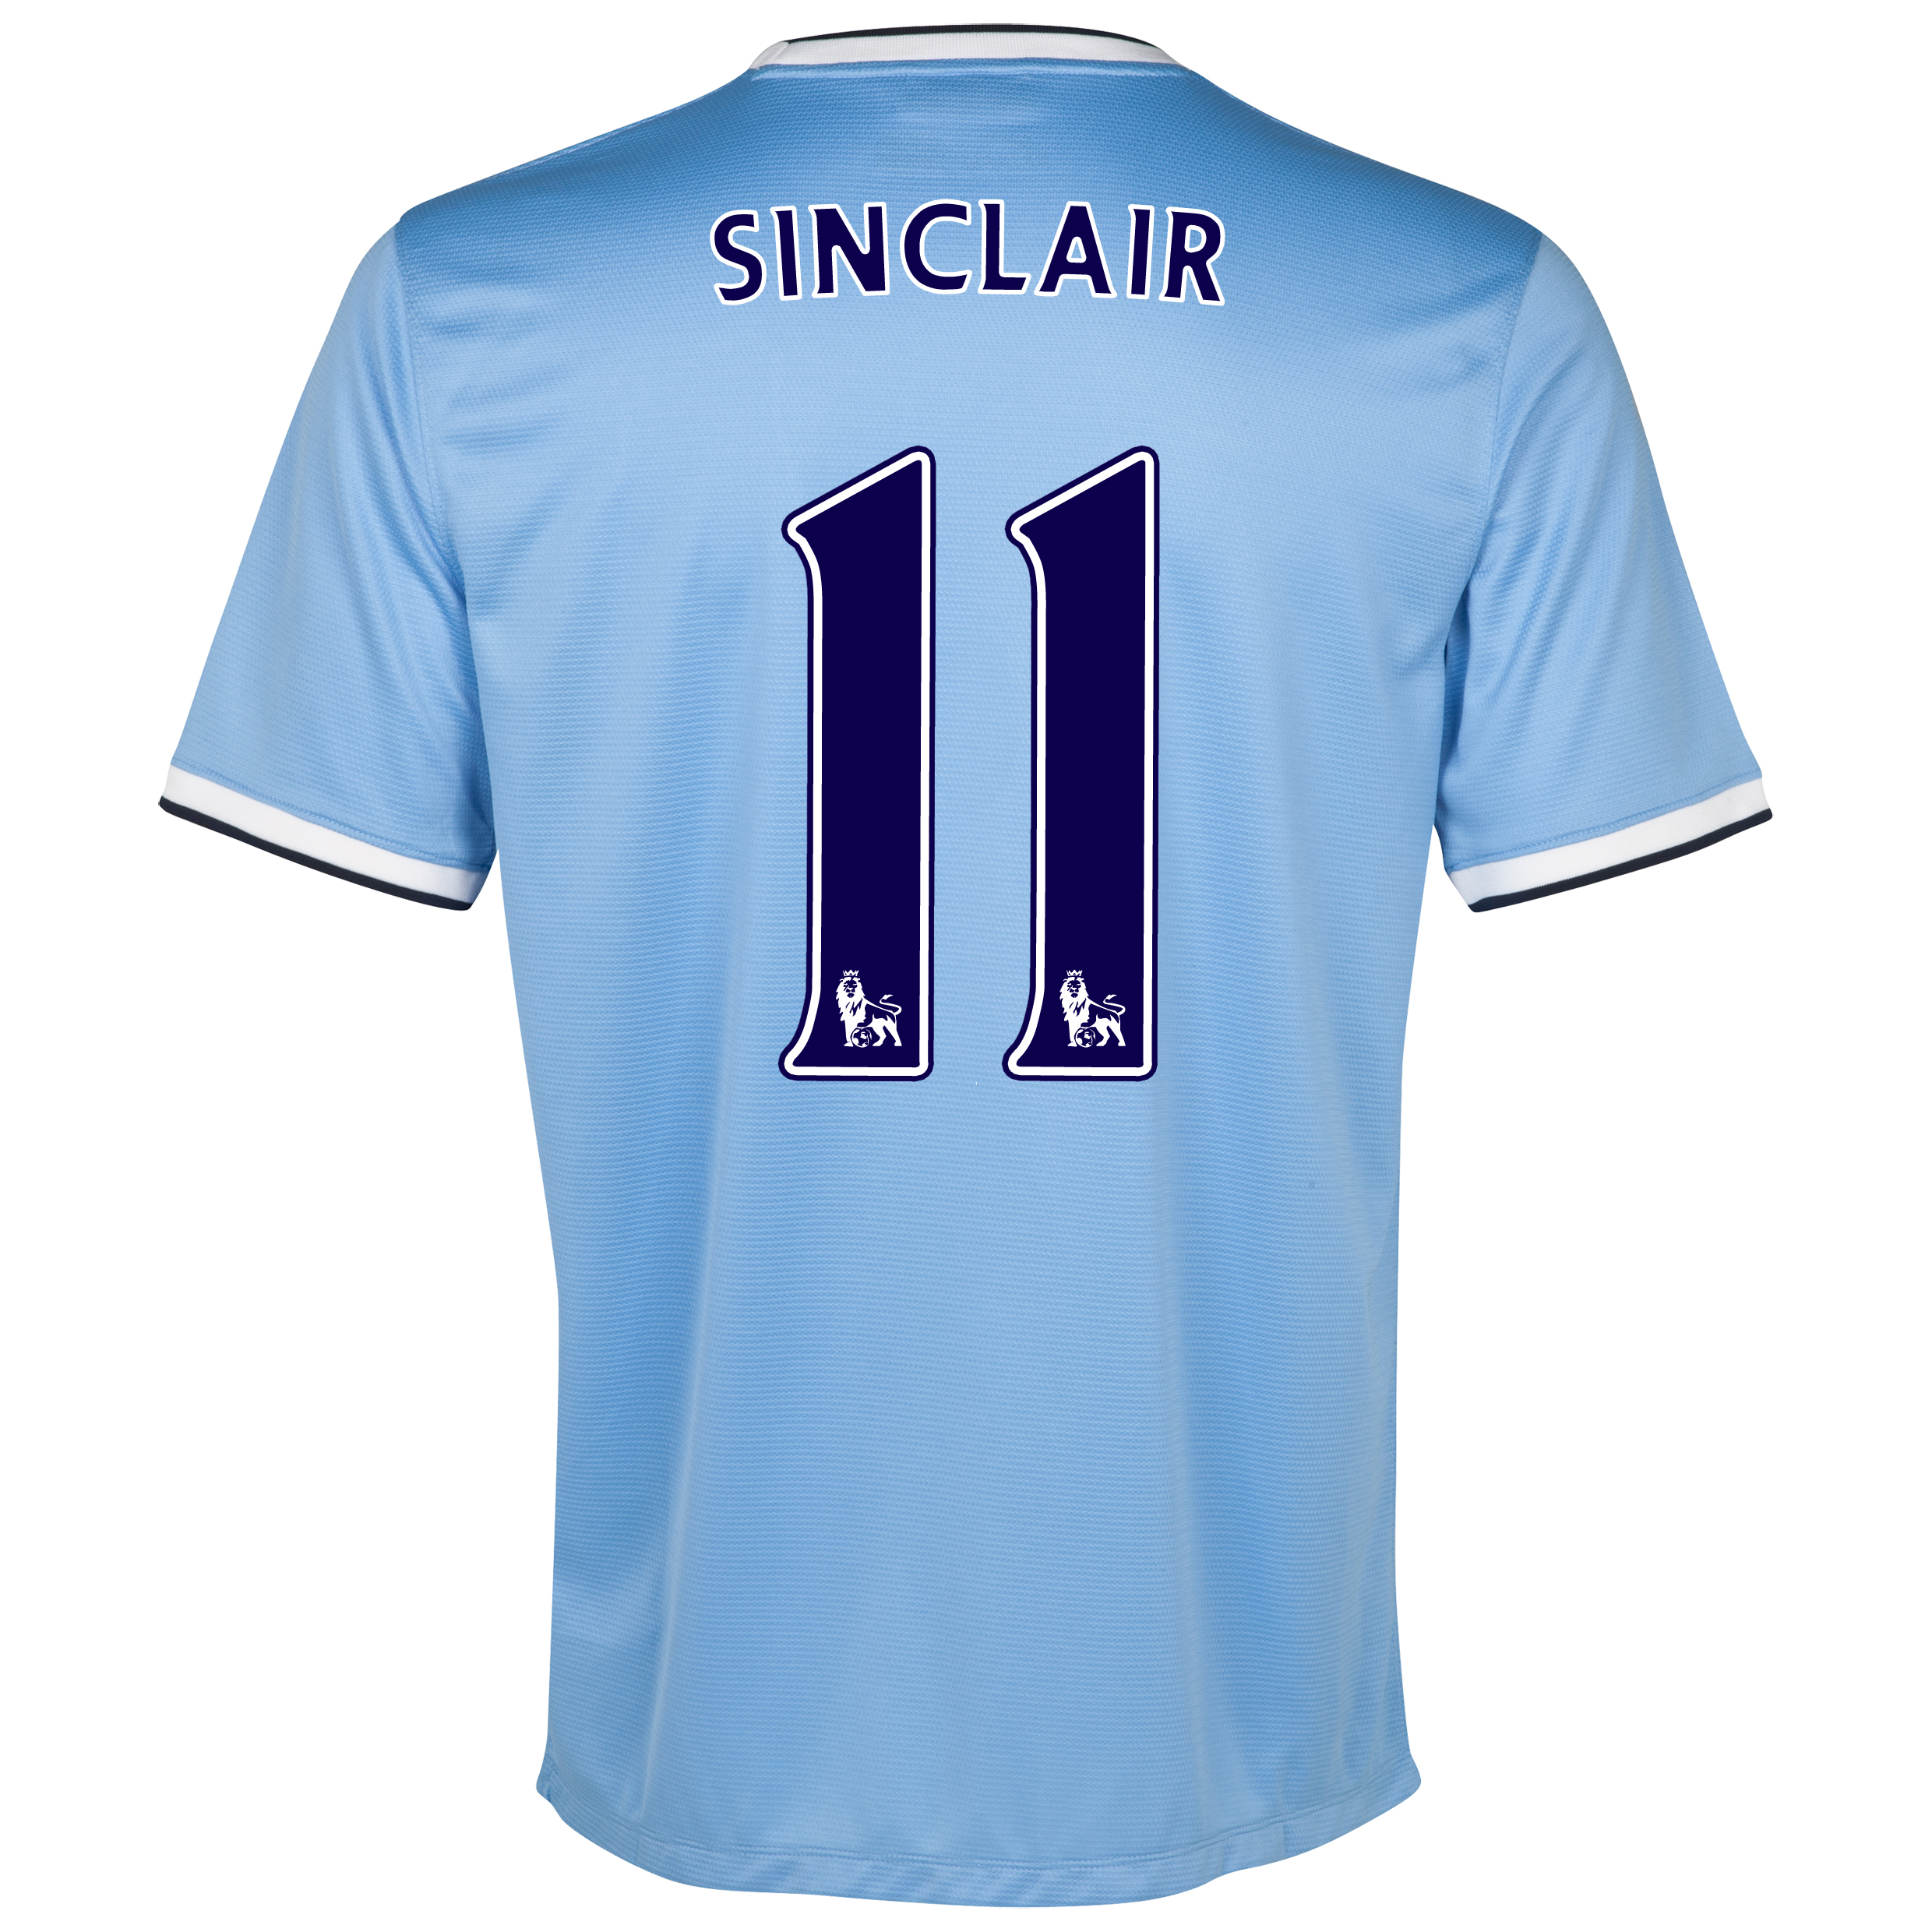 Manchester City Home Shirt 2013/14 with Sinclair 11 printing